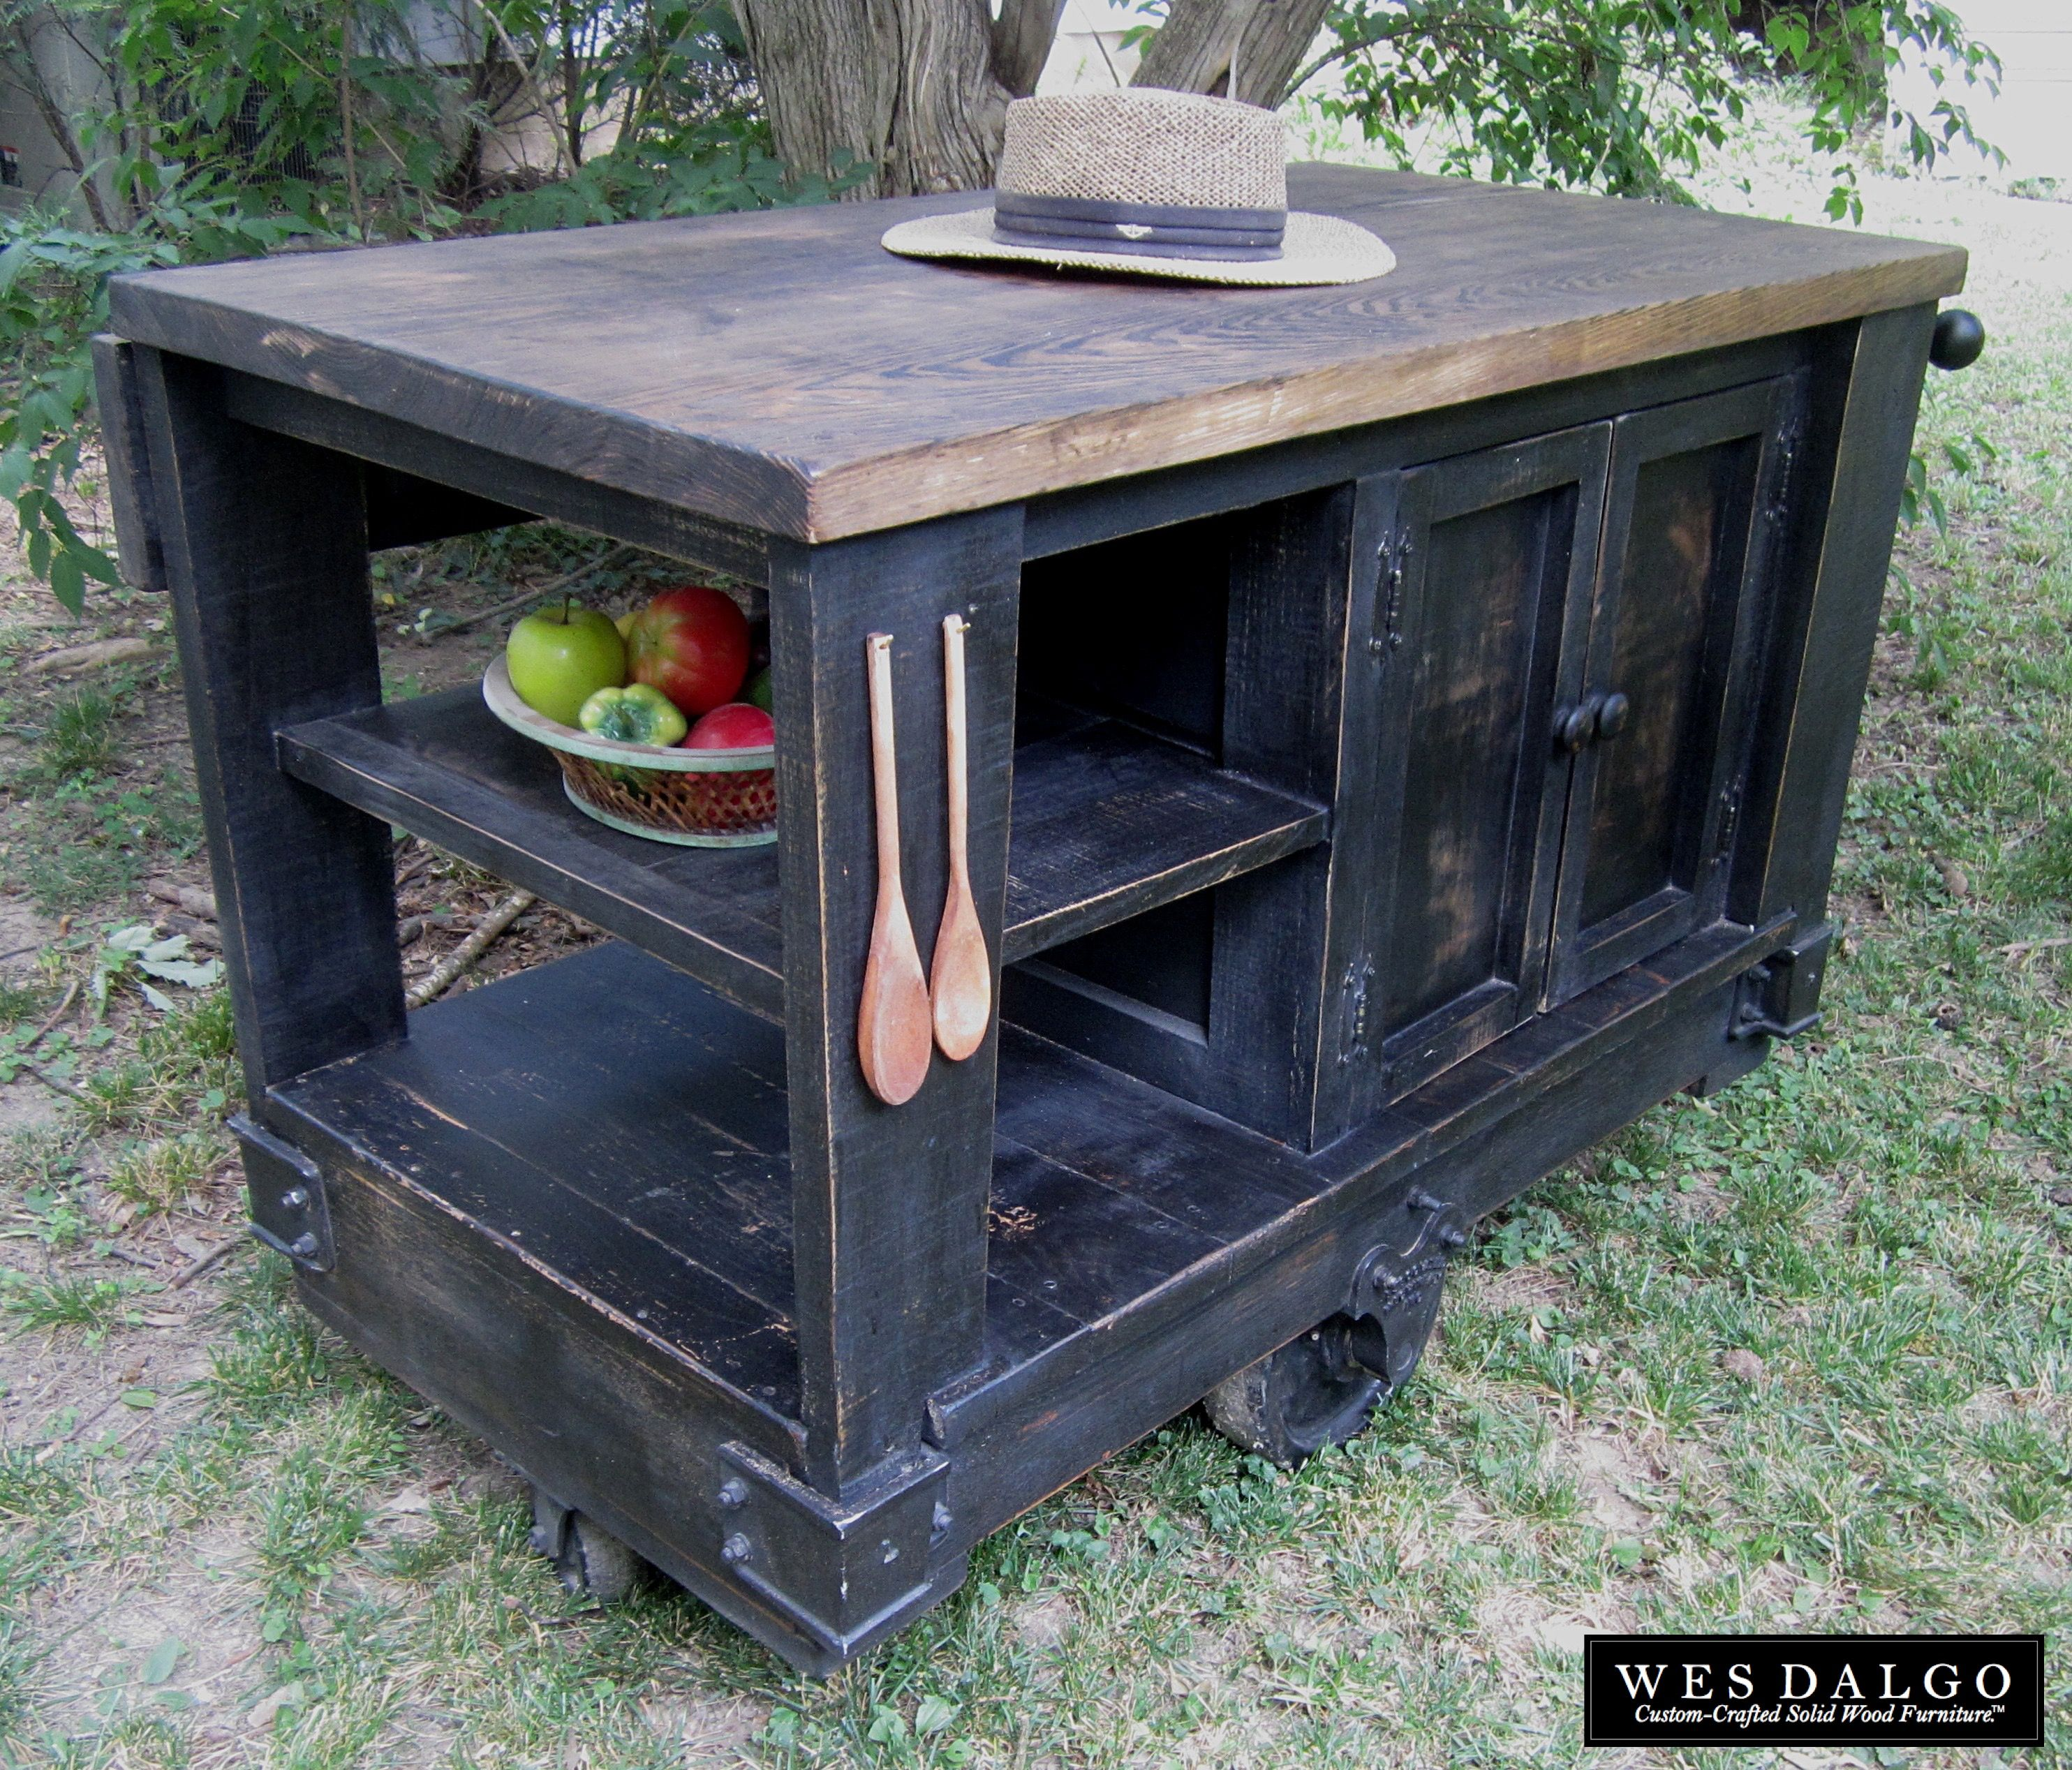 Buy Custom Distressed Black Modern Rustic Kitchen Island Cart With Walnut Stained Top Made To Order From Wes Dalgo Custommade Com